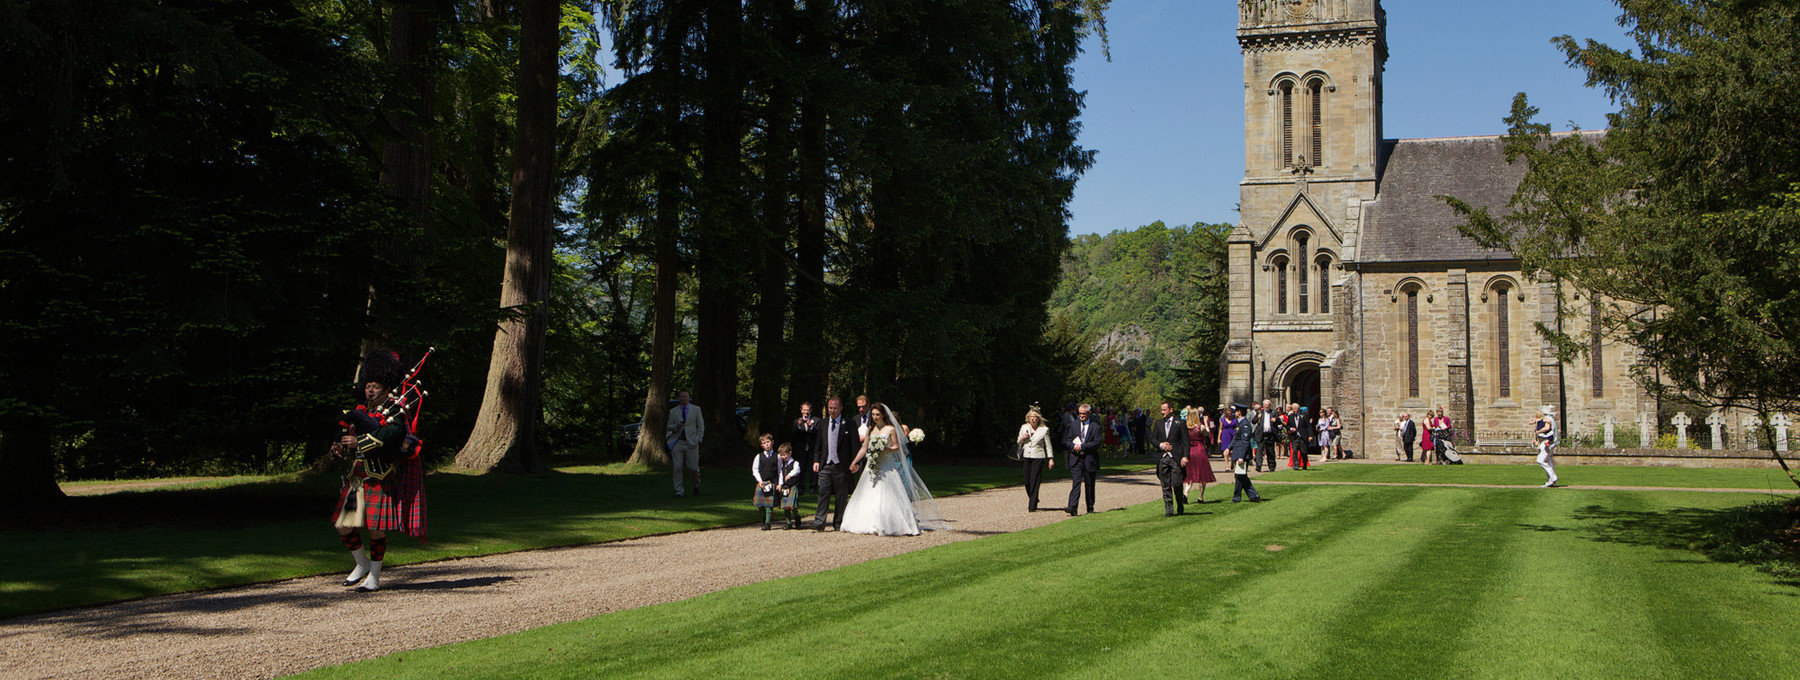 Murthly Castle Chapel wedding procession - Newly weds follow the Piper from Murthly Chapel to Murthly Castle (© Nigel Lumsden)